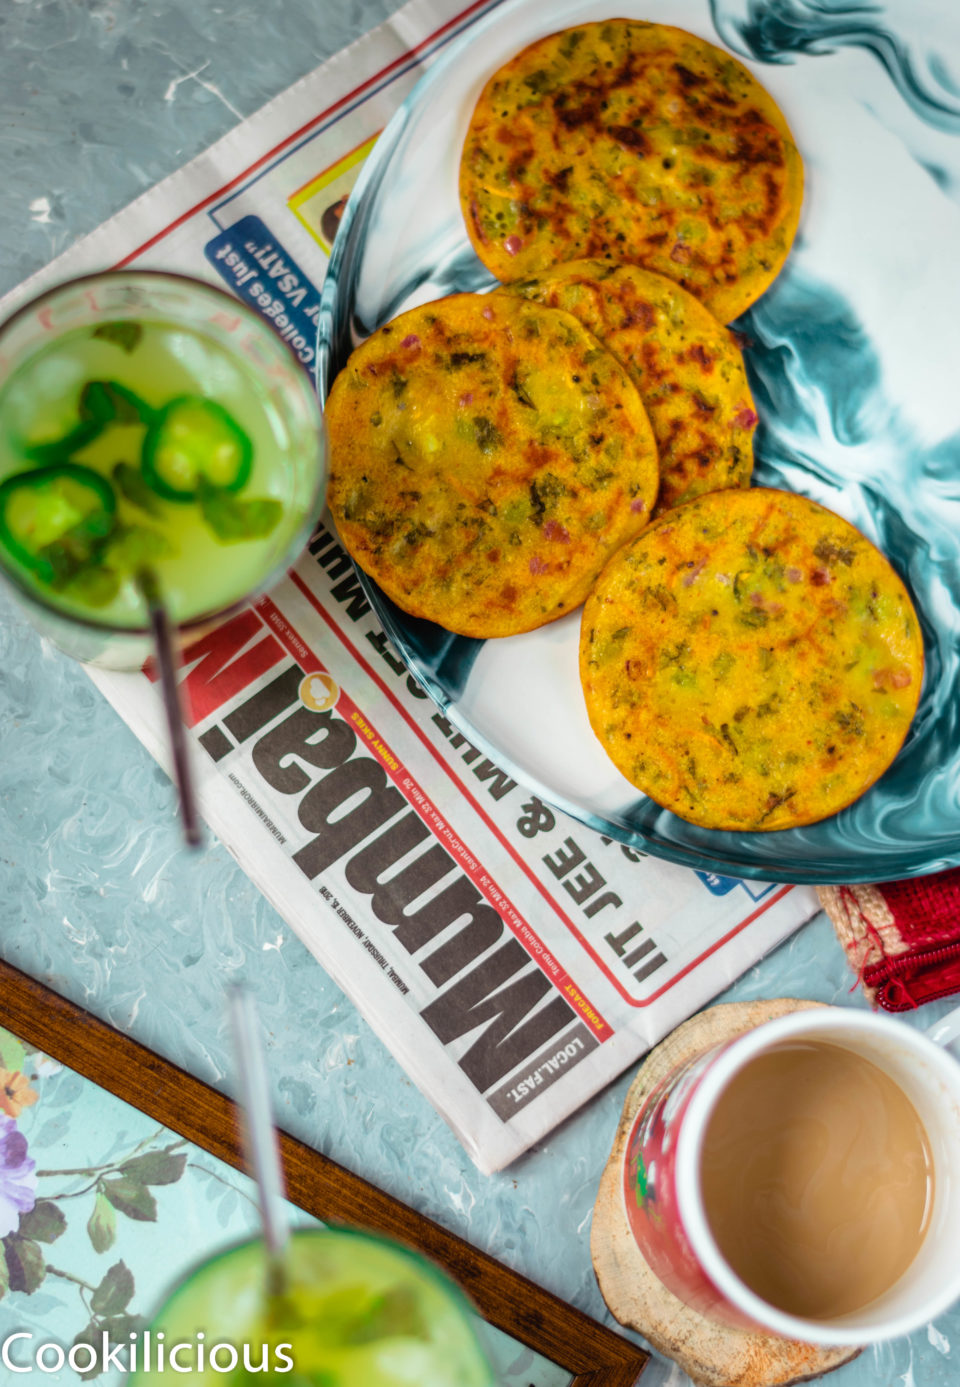 3 to 4 Mini Masala Uttapam placed in a plate with a glass of juice and tea next to it